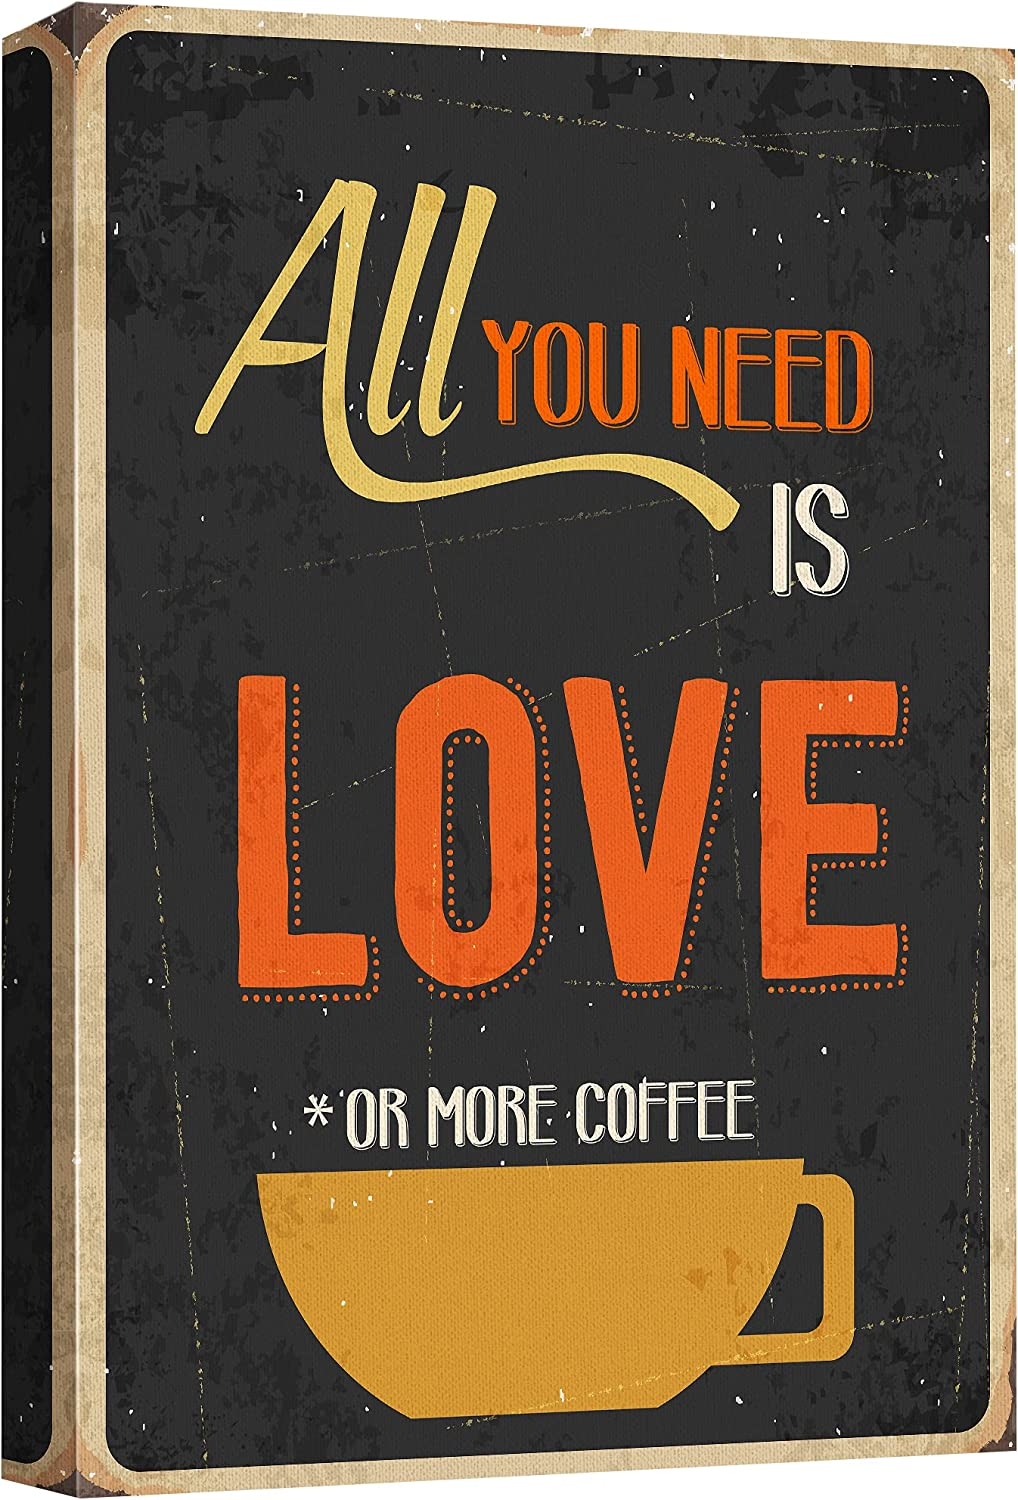 wall26 Canvas Denver Mall Wall Art - Fixed price for sale Vintage Style Gicle Coffee Poster